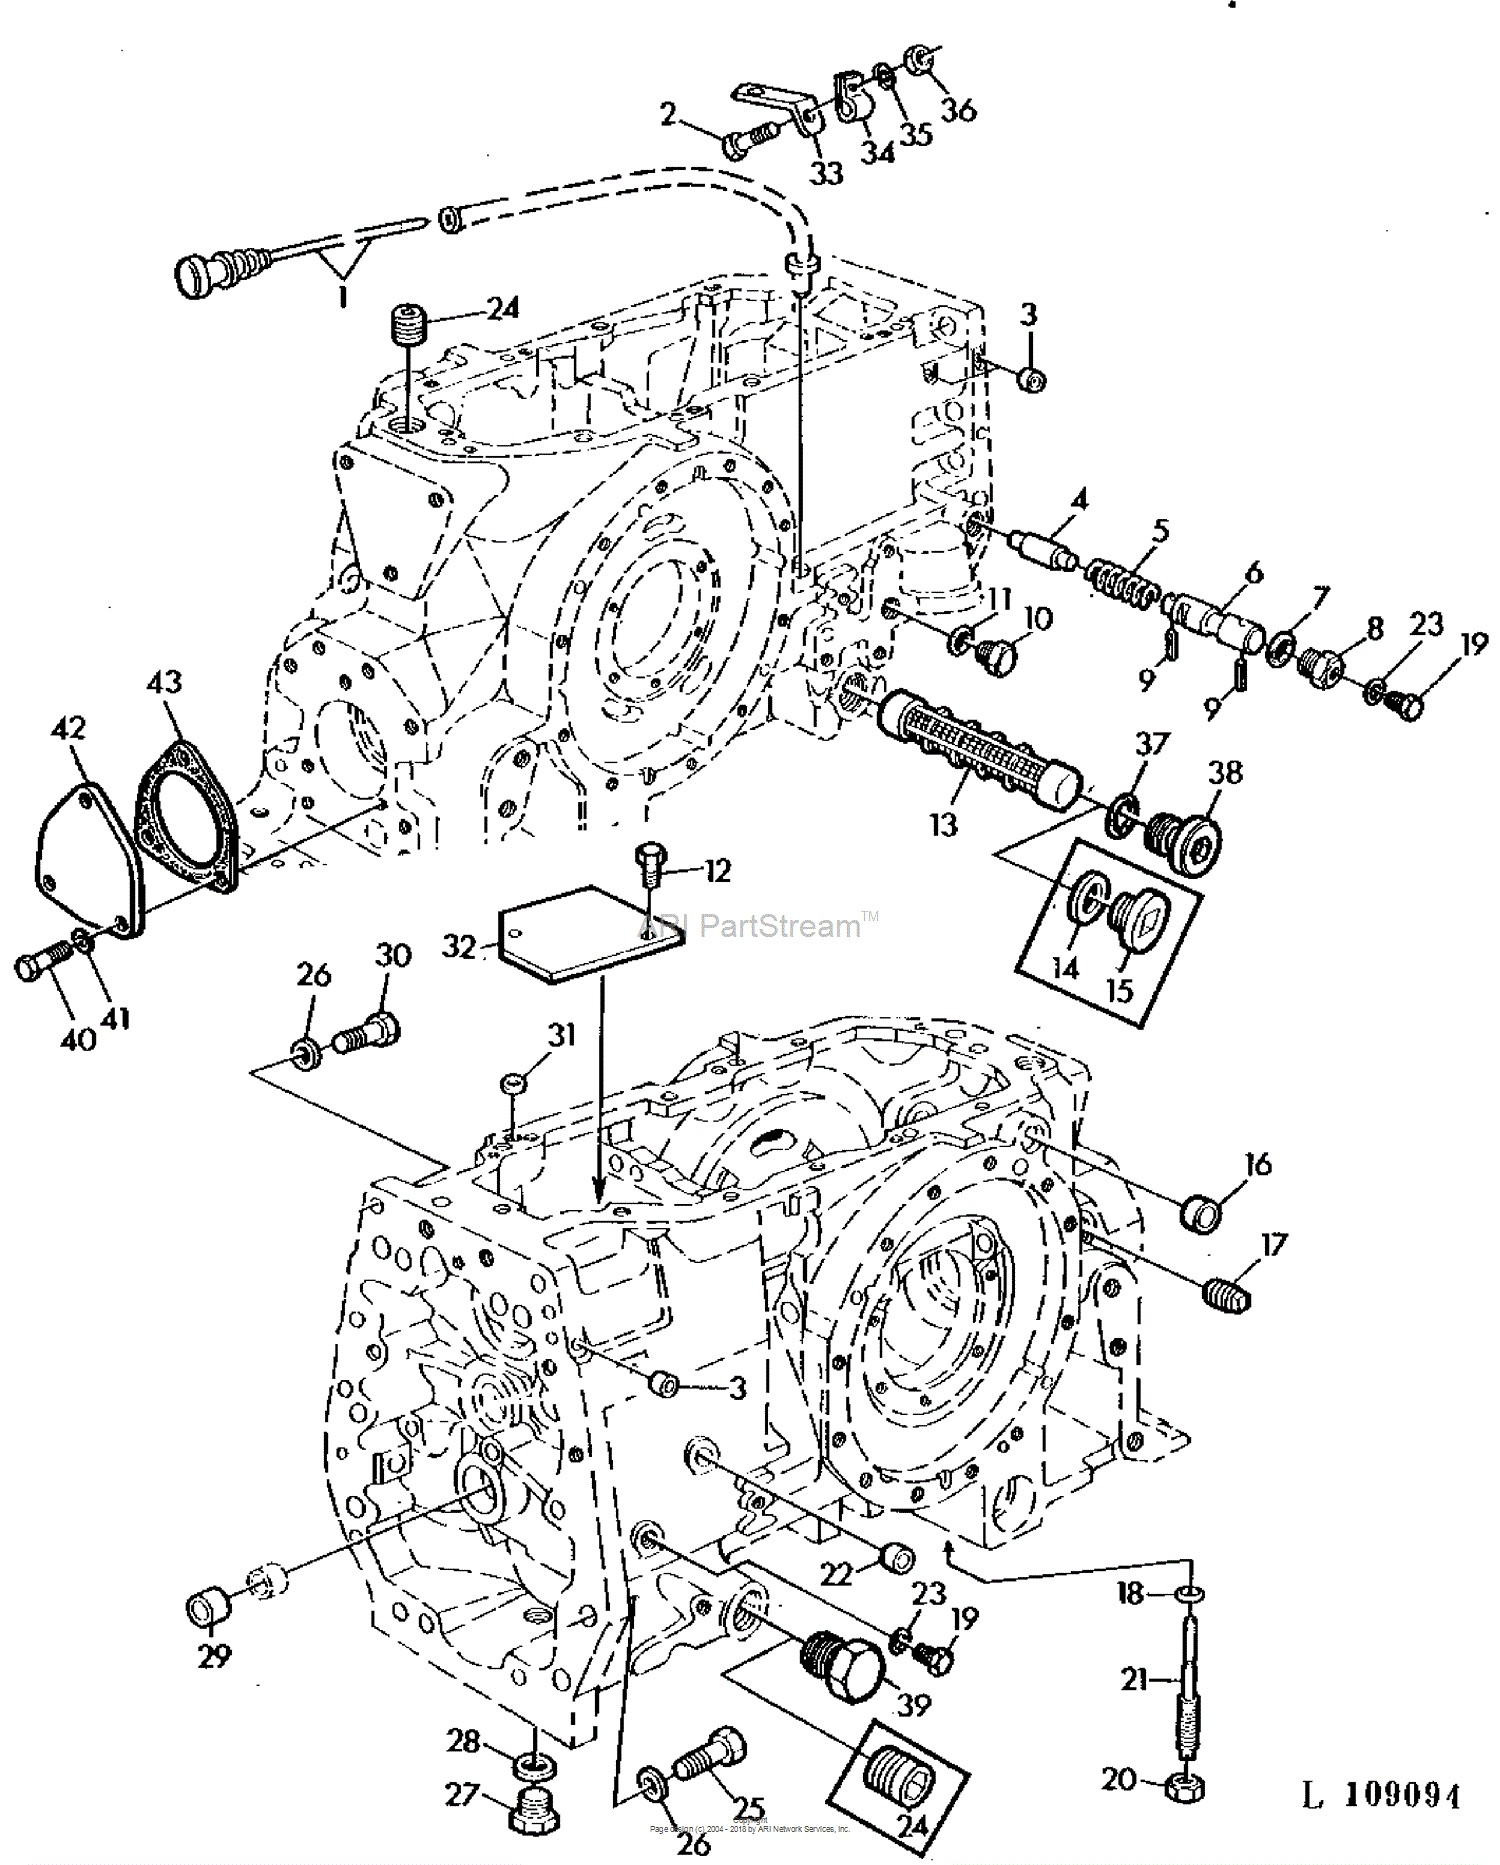 3 Point Hitch Parts Diagram John Deere Parts Diagrams John Deere 2550 Tractor Pc4187 Of 3 Point Hitch Parts Diagram John Deere Parts Diagrams John Deere X465 Garden Tractor Pc9109